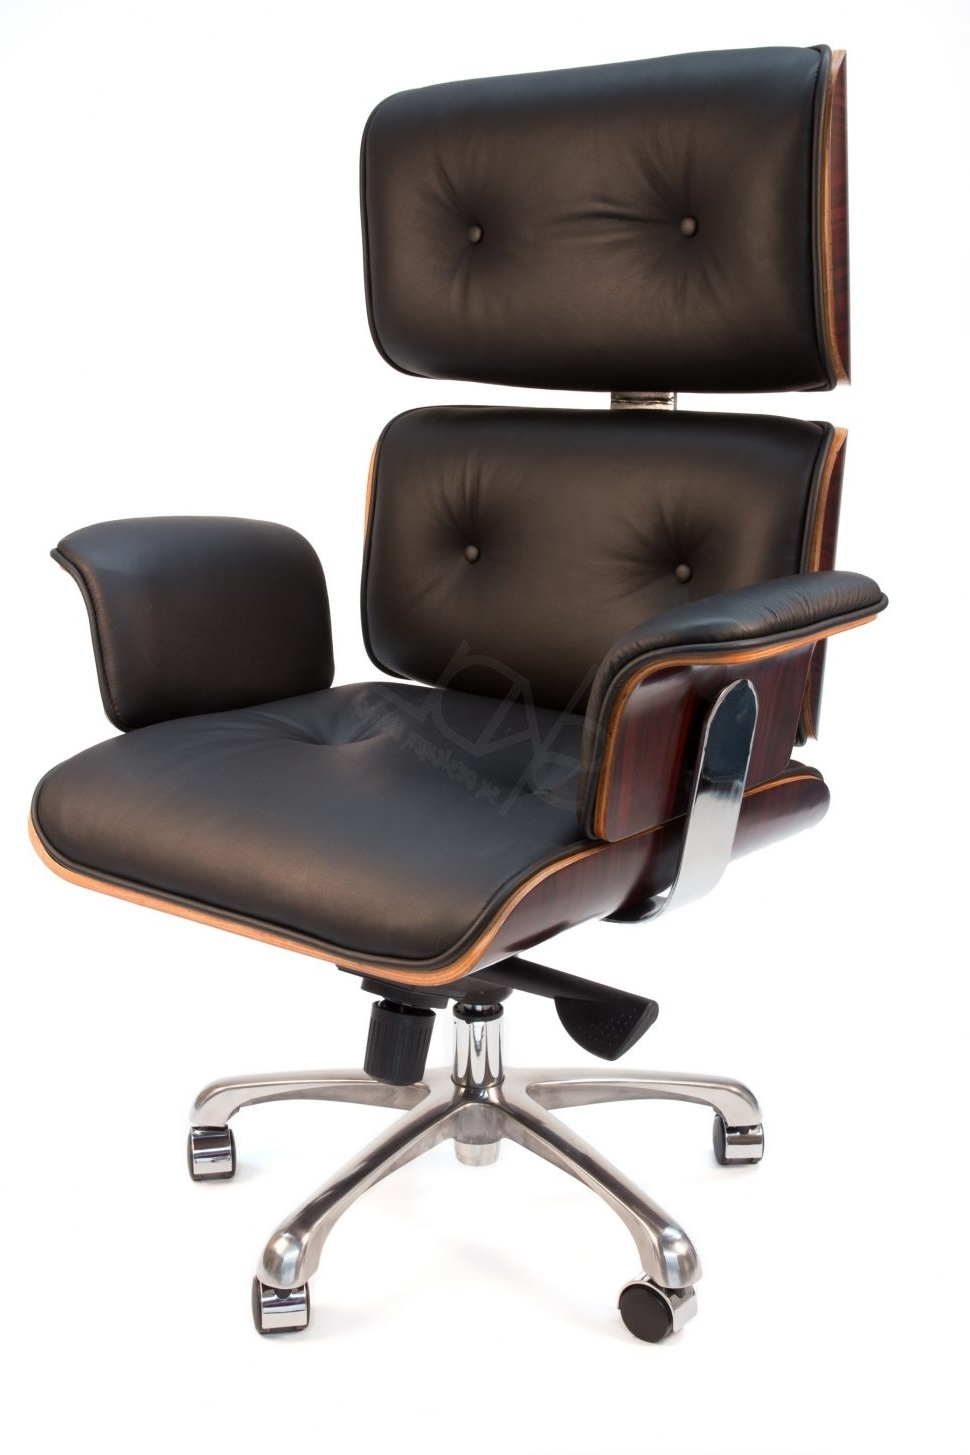 Green Leather Executive Office Chairs Pertaining To Well Known Office Chairs : Comfortable Leather Desk Chair Heated Office Chair (Gallery 2 of 20)